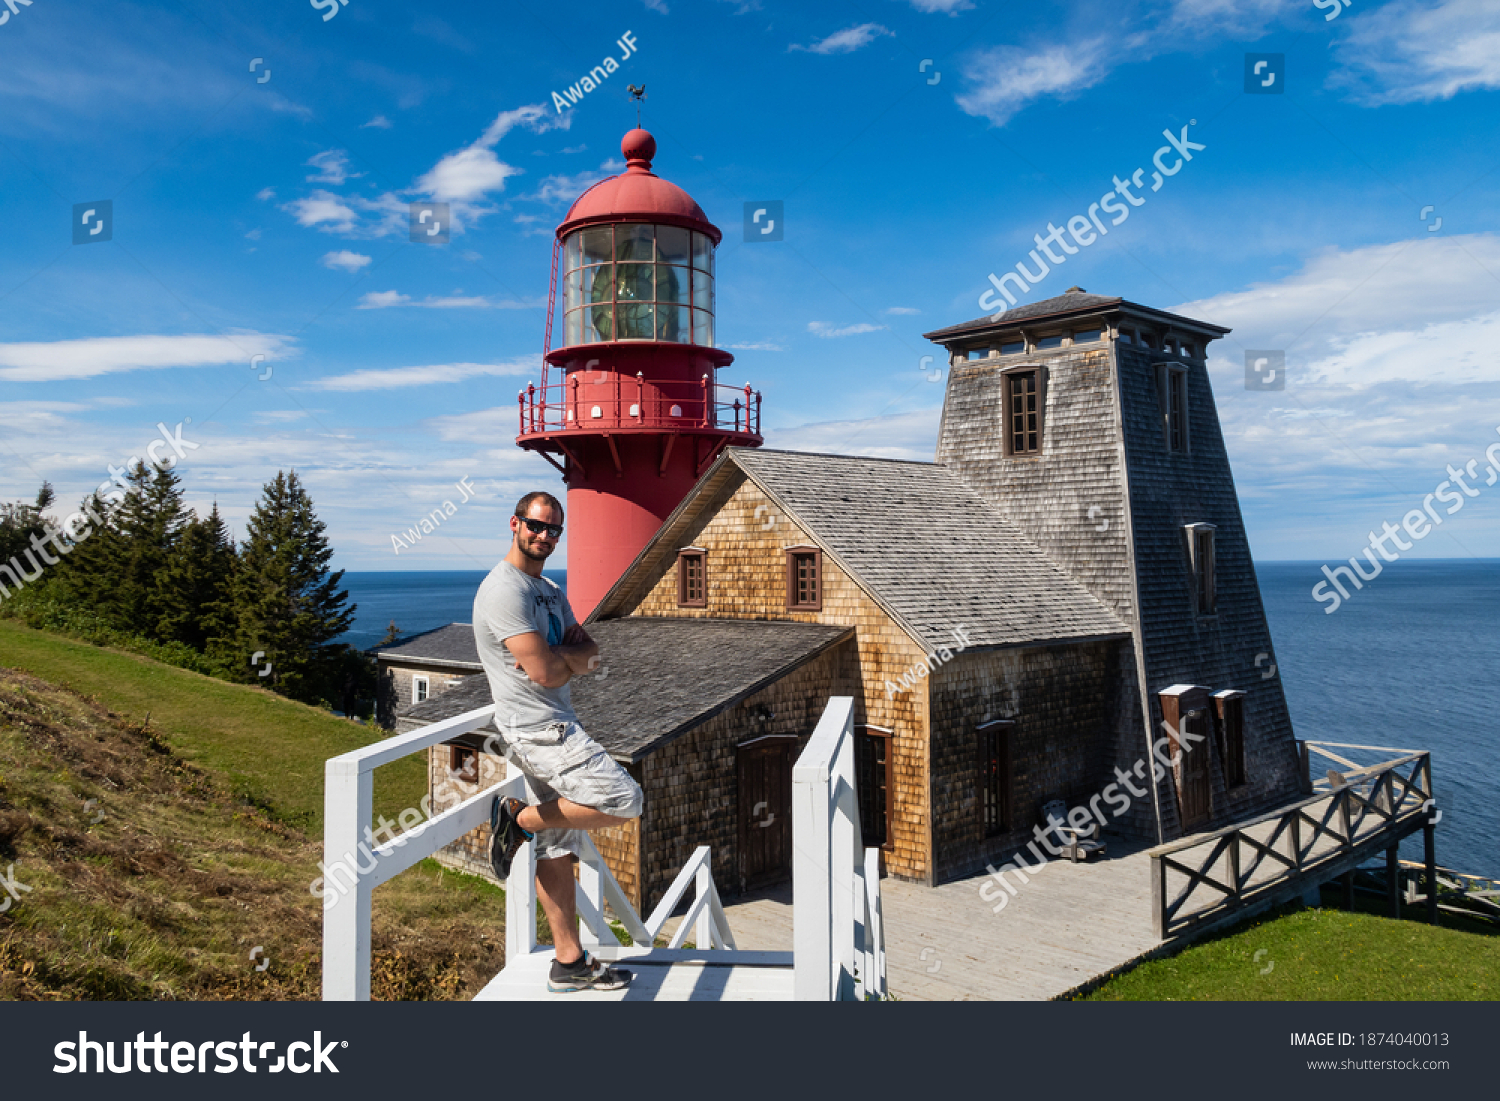 stock-photo-young-man-posing-in-front-of